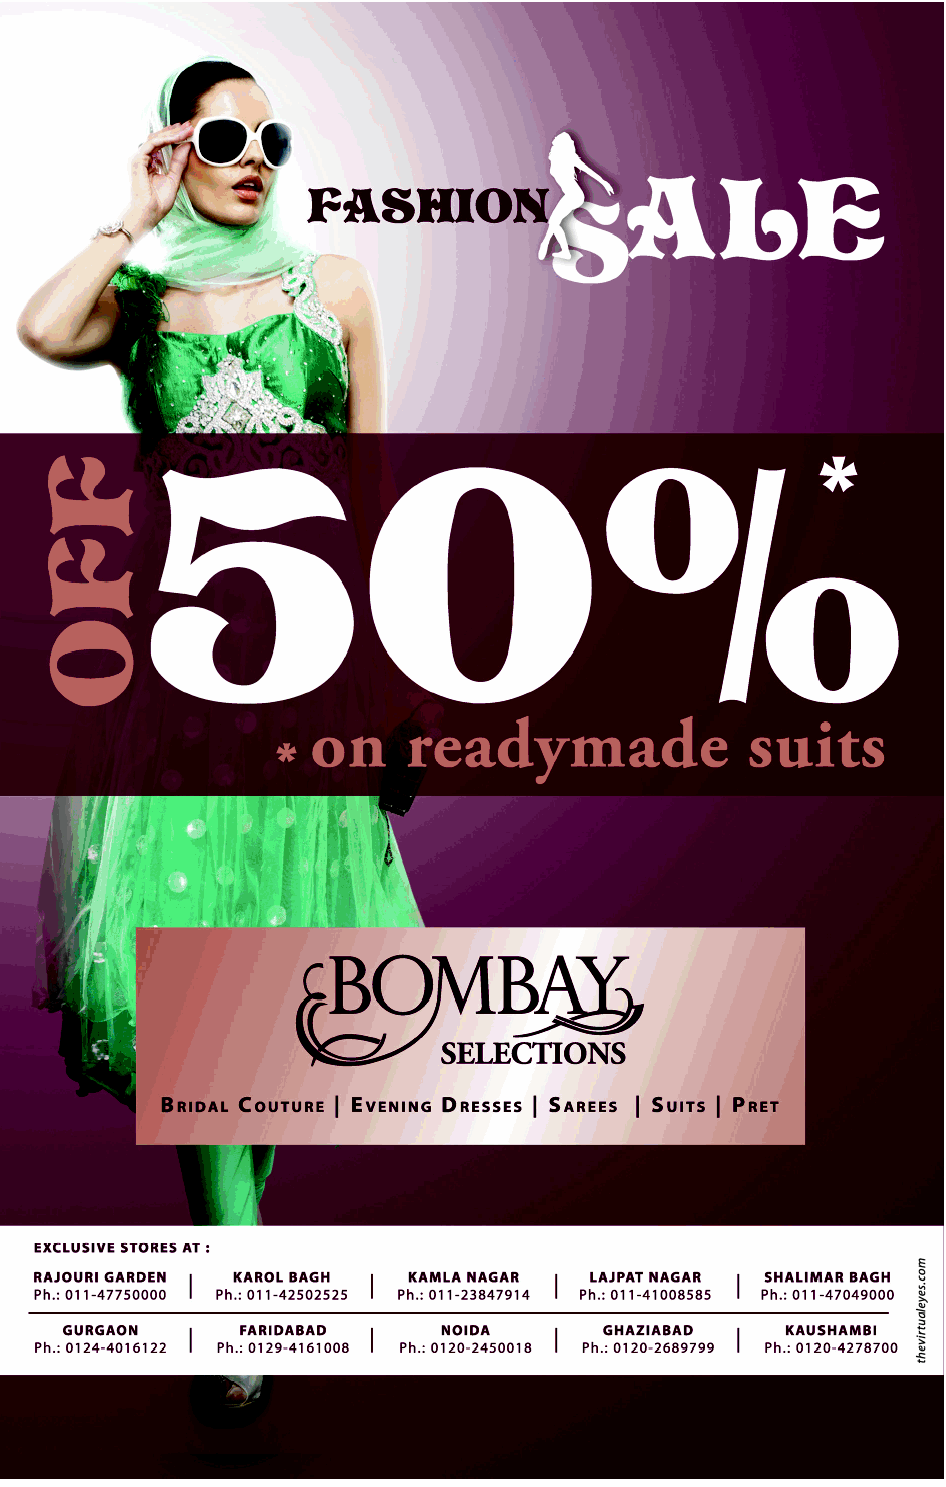 Bombay Selections - Fashion SALE - 50% Off